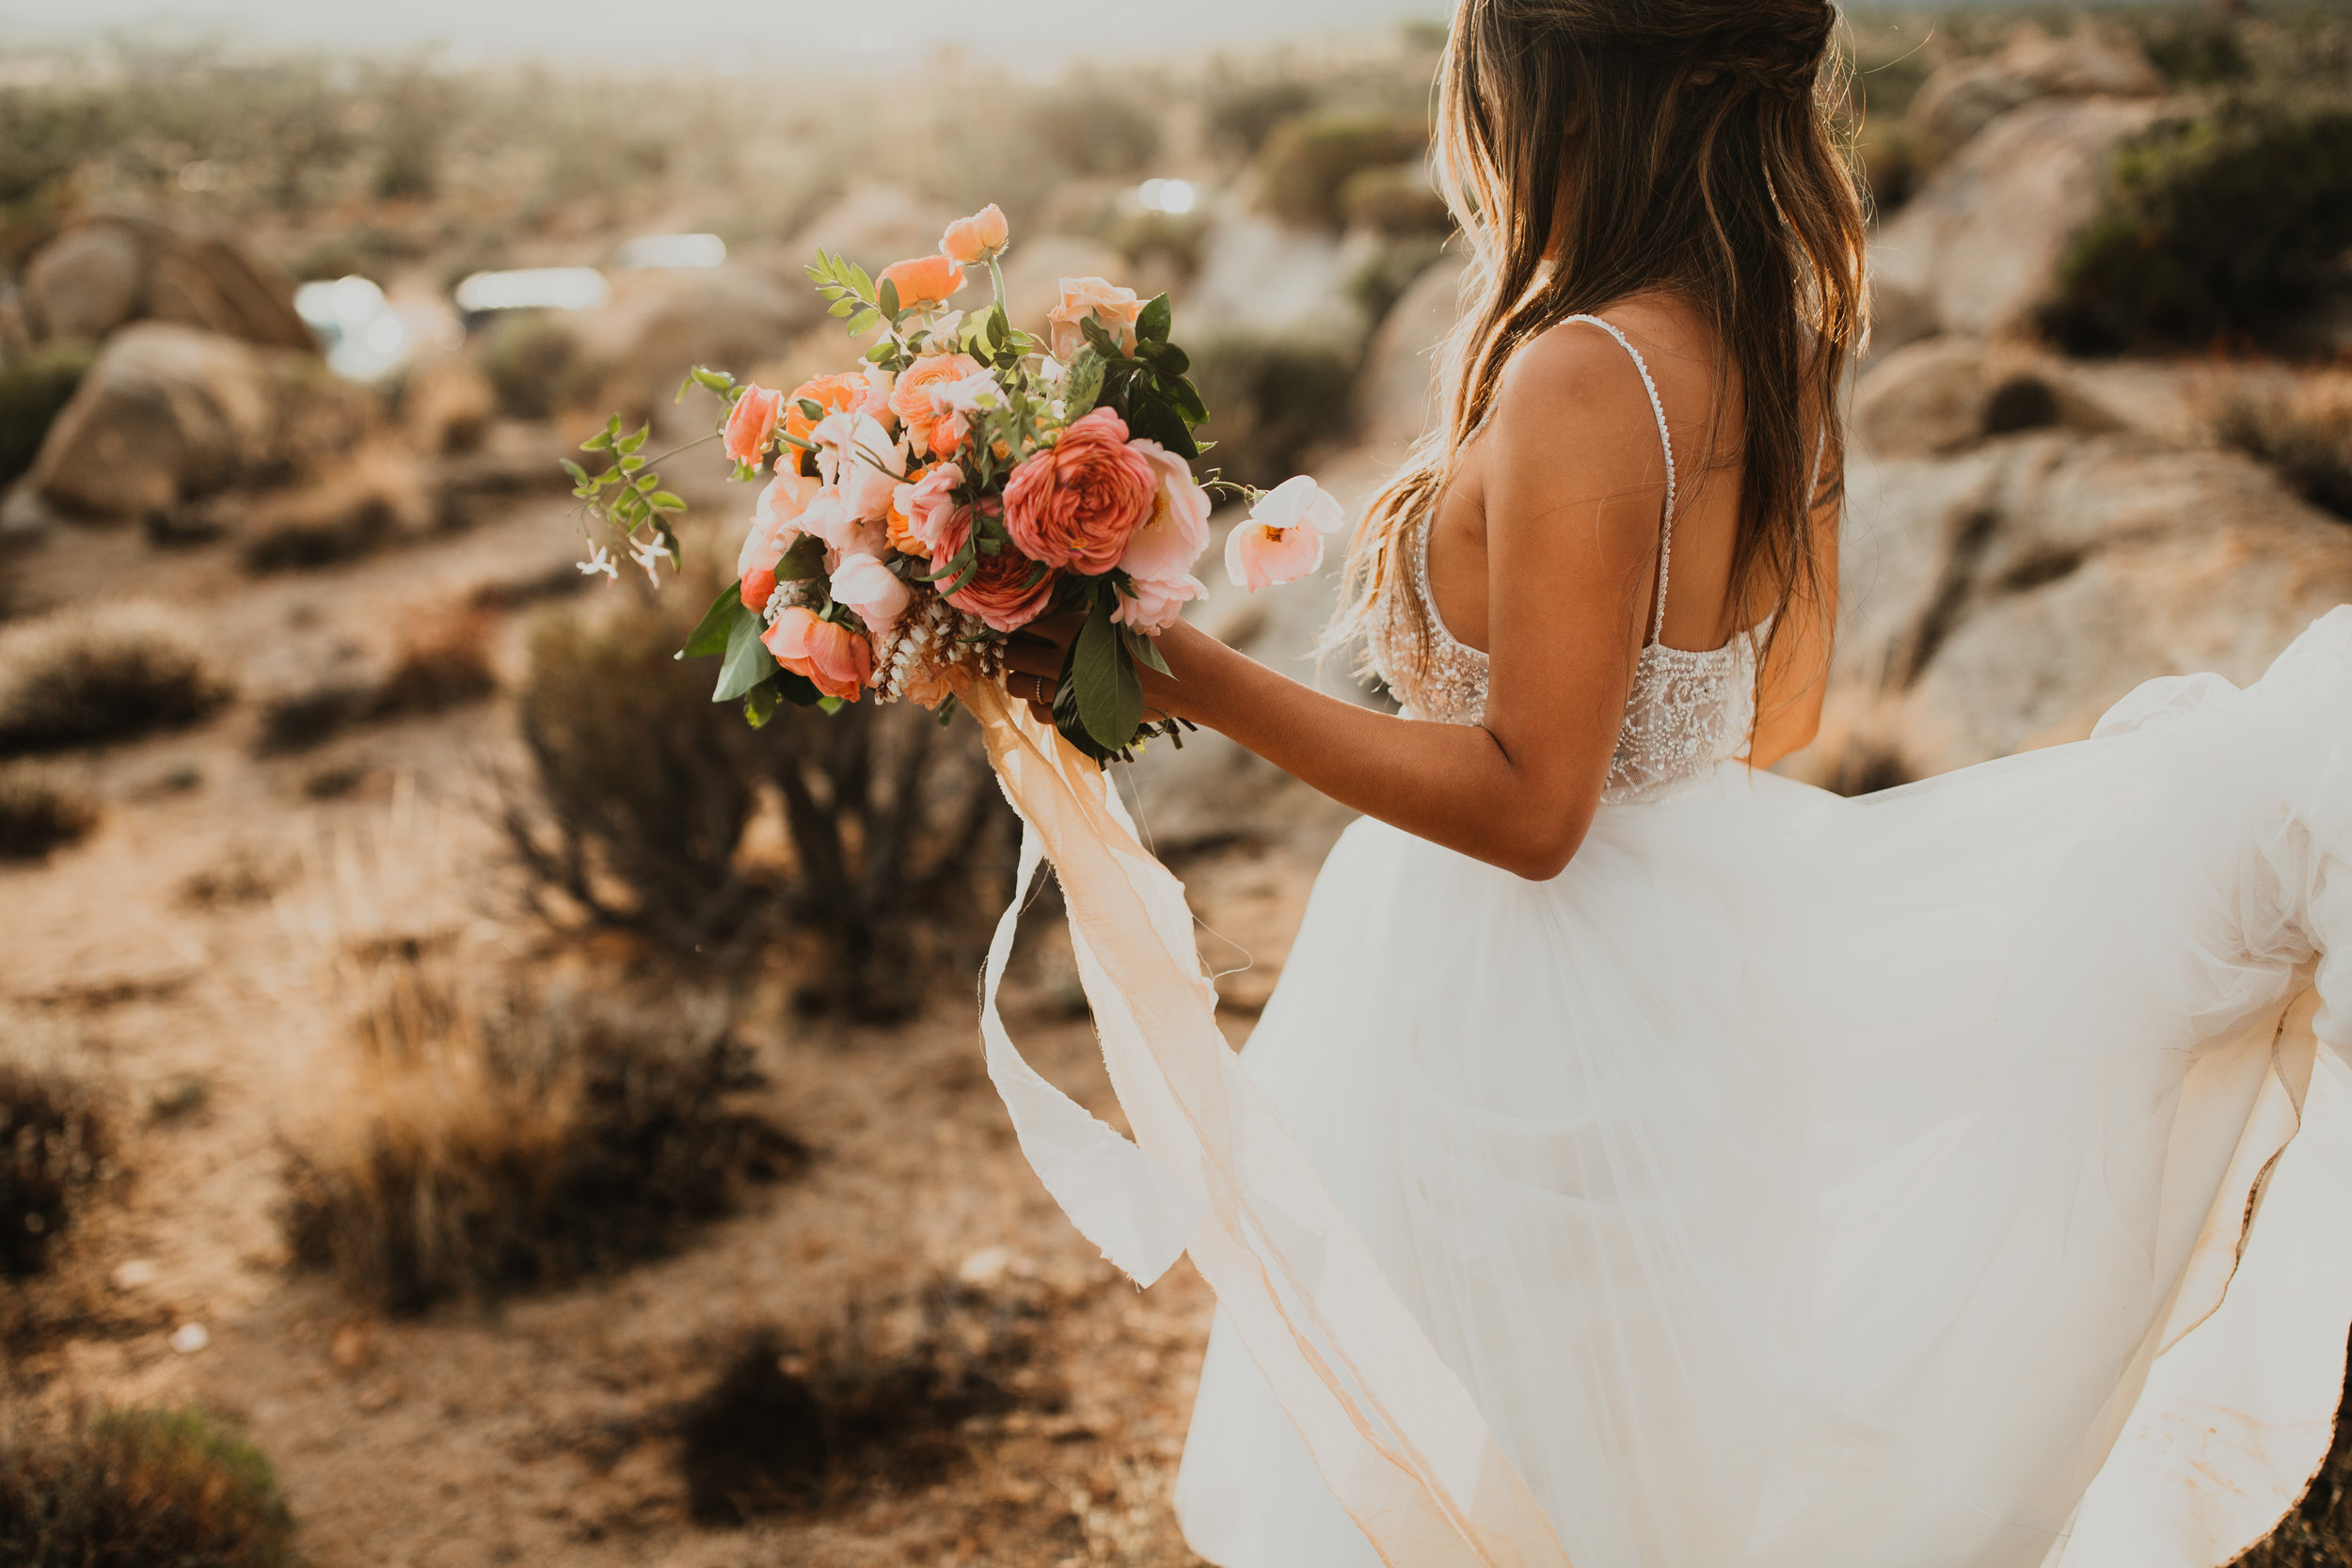 Asian Bride, boho wedding, wedding hair, wedding inspiration. natural beauty, outdoor wedding, peach and pink flowers, half up-do. Vanity Belle in Orange County (Costa Mesa) and San Diego (La Jolla)